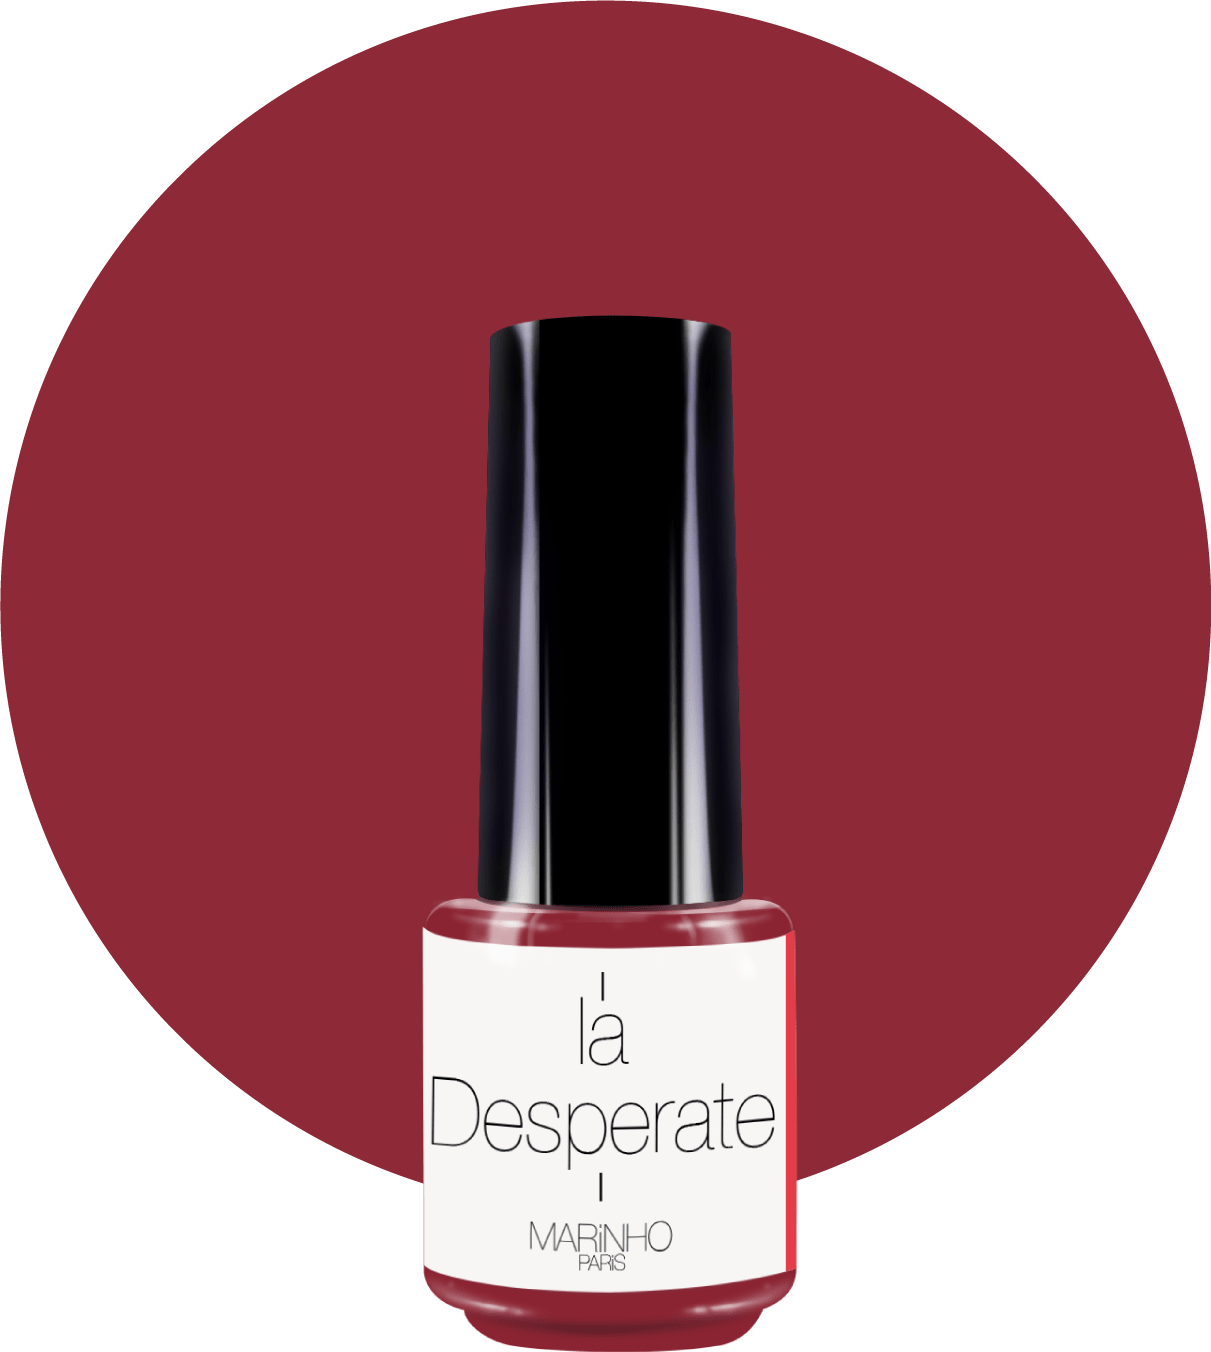 vernis semi-permanent bordeau rouge marinho paris sur rond bordeau